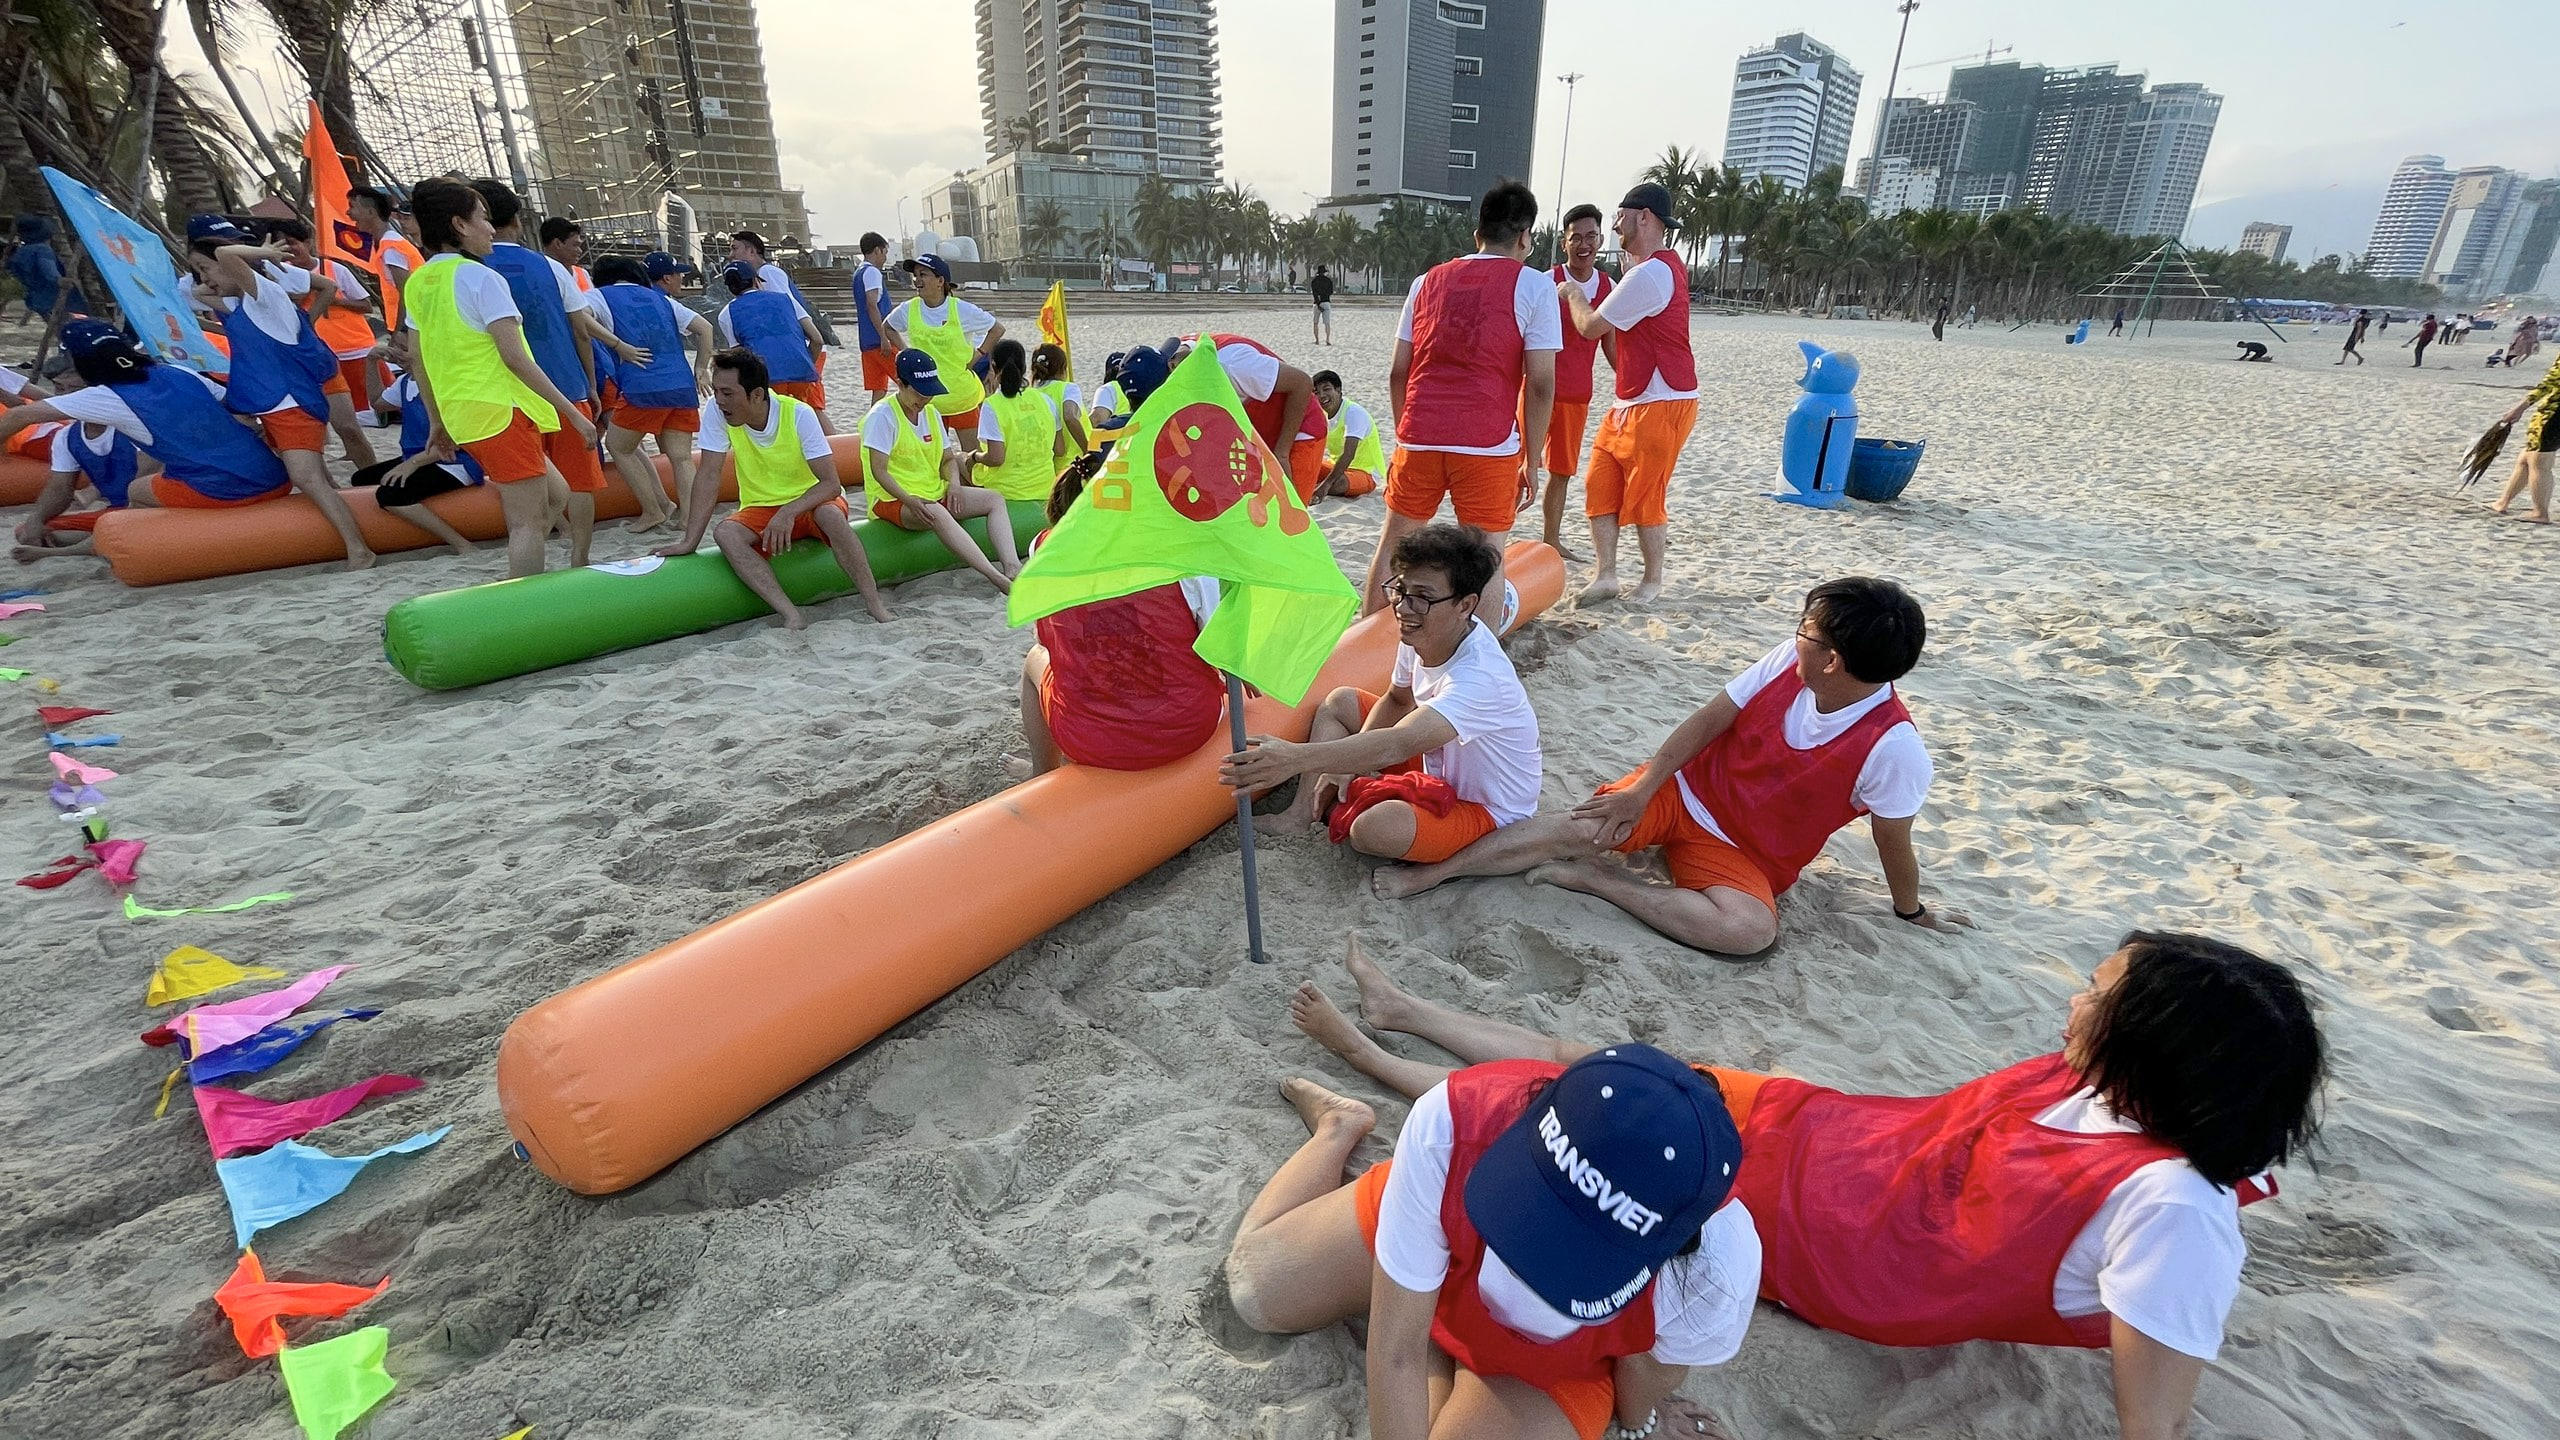 Team building activities were held at My Khe Beach, which was honored as one of the sexiest beaches on the planet!